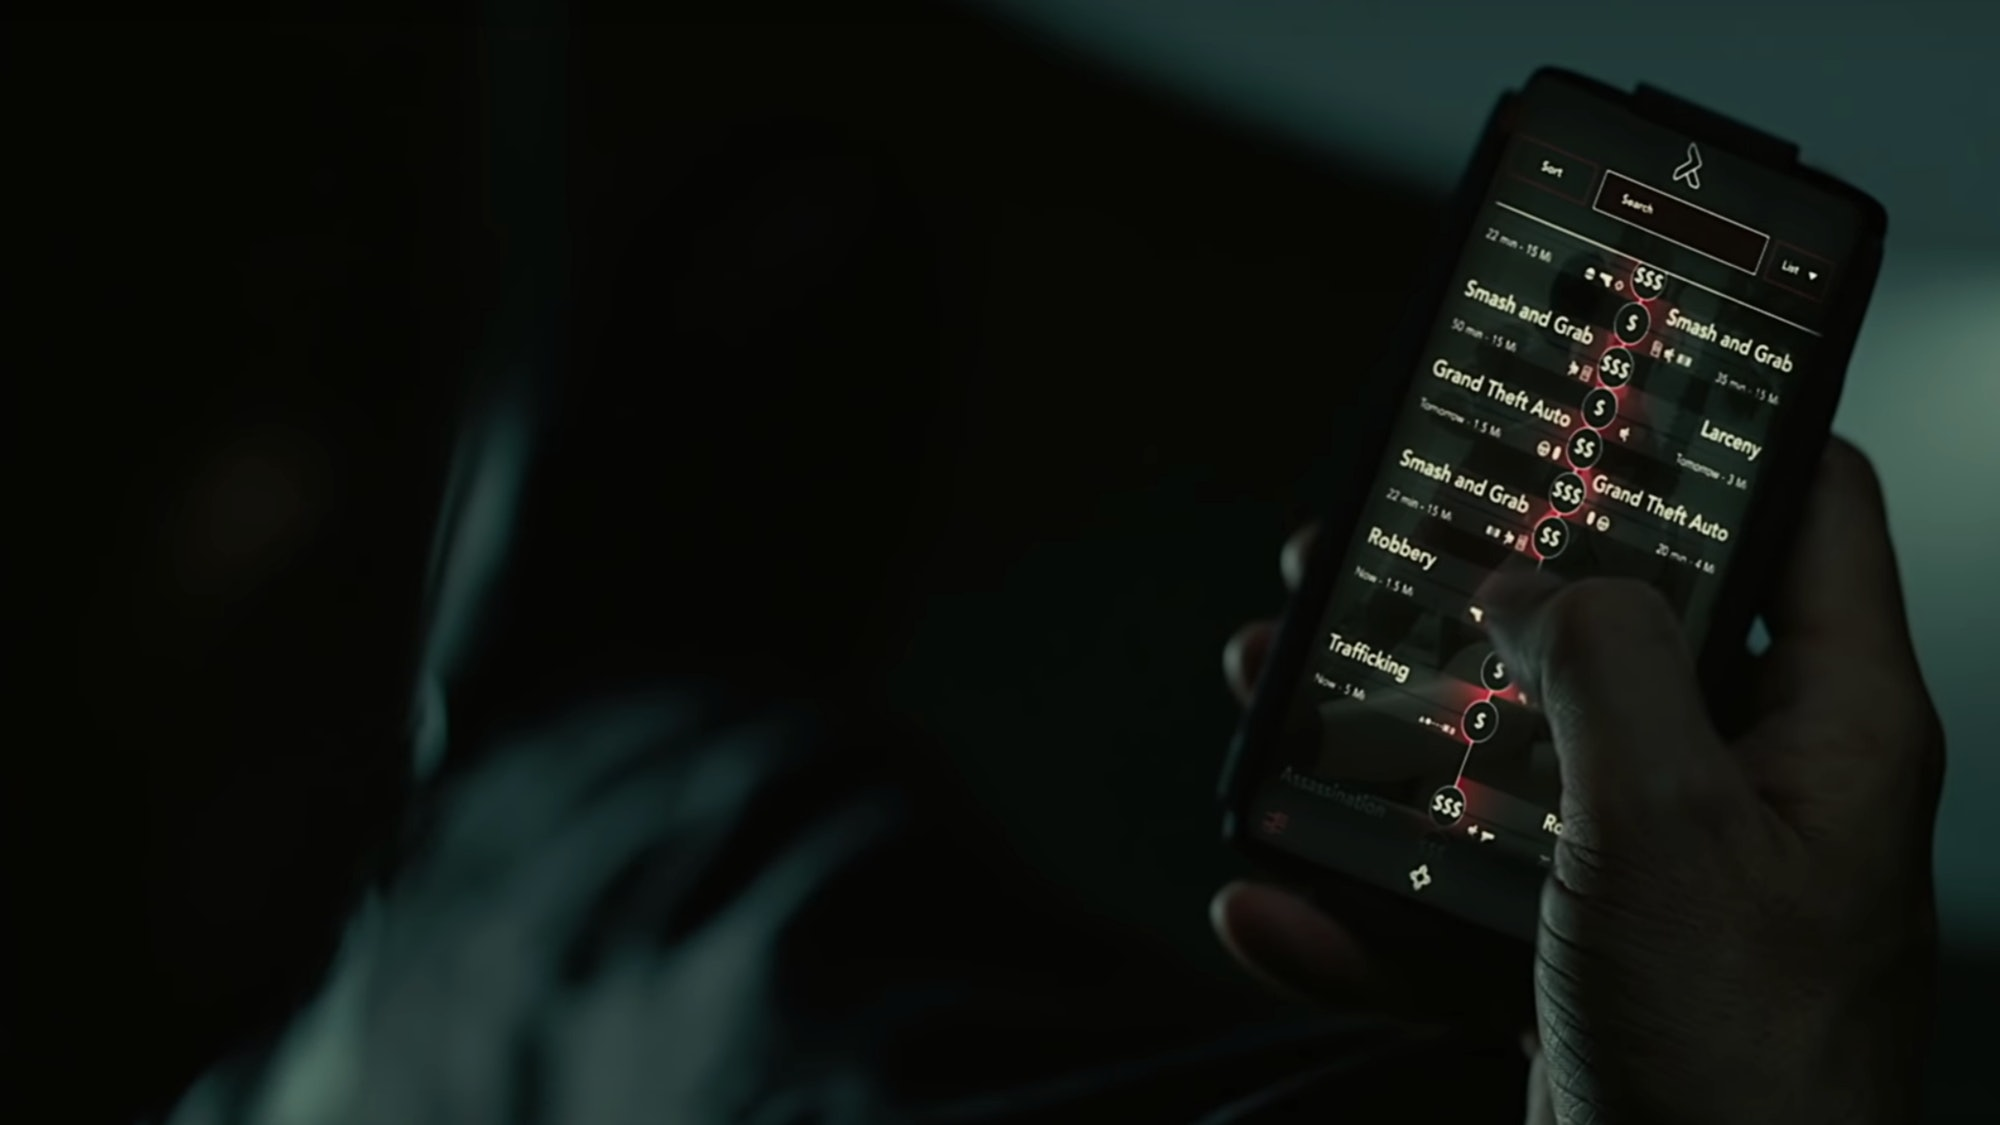 Still from Westworld III with phone full of criminal activity